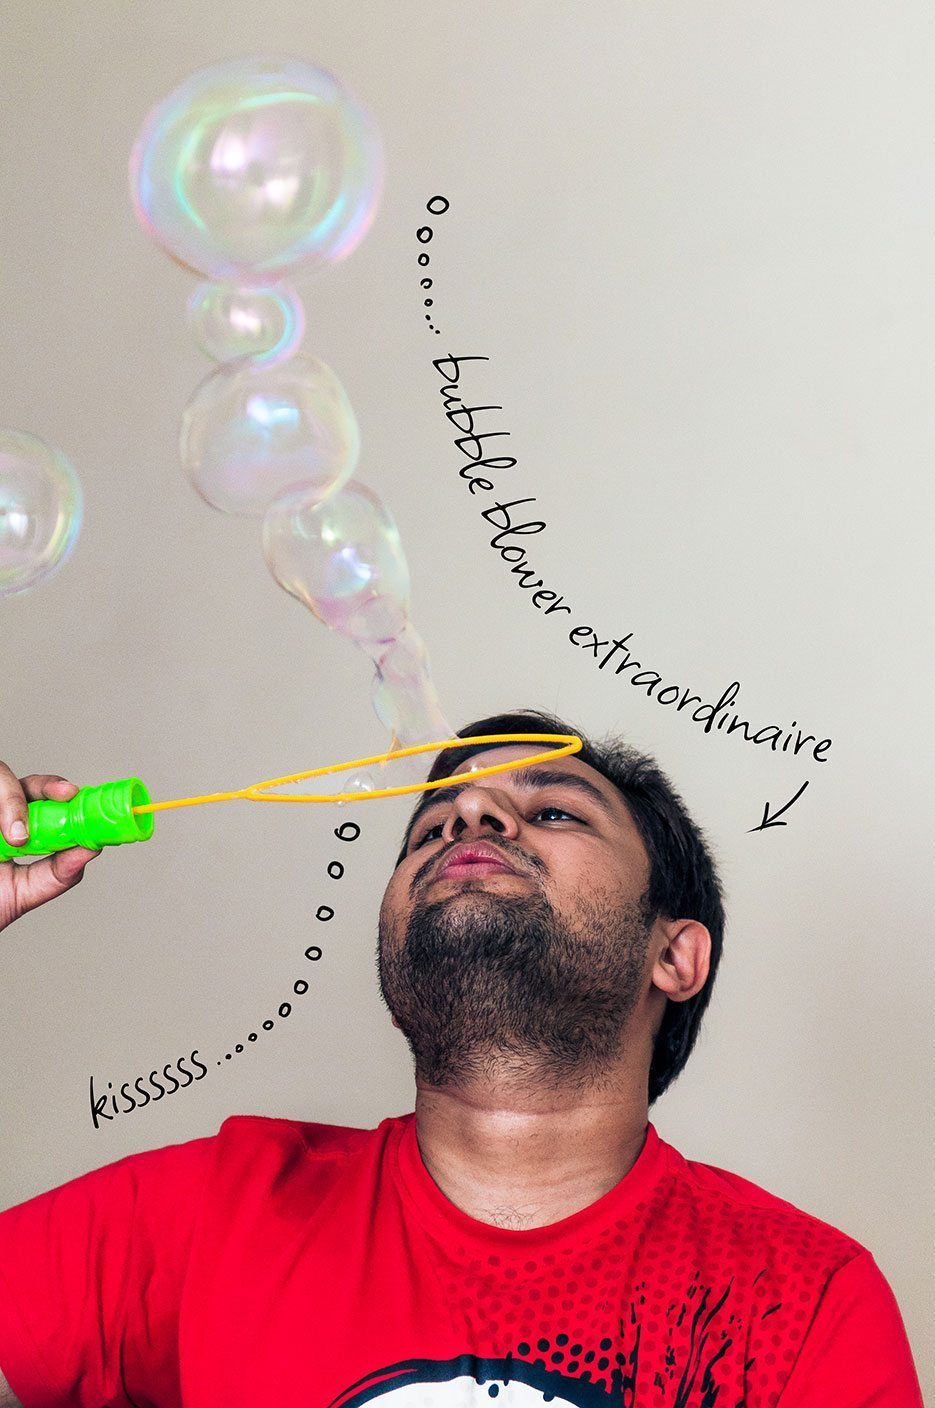 Bubble-Blower-Extraordinaire-Saurabh-Kejriwal-Friend-Creative-Naina.co-Photographer-Storyteller